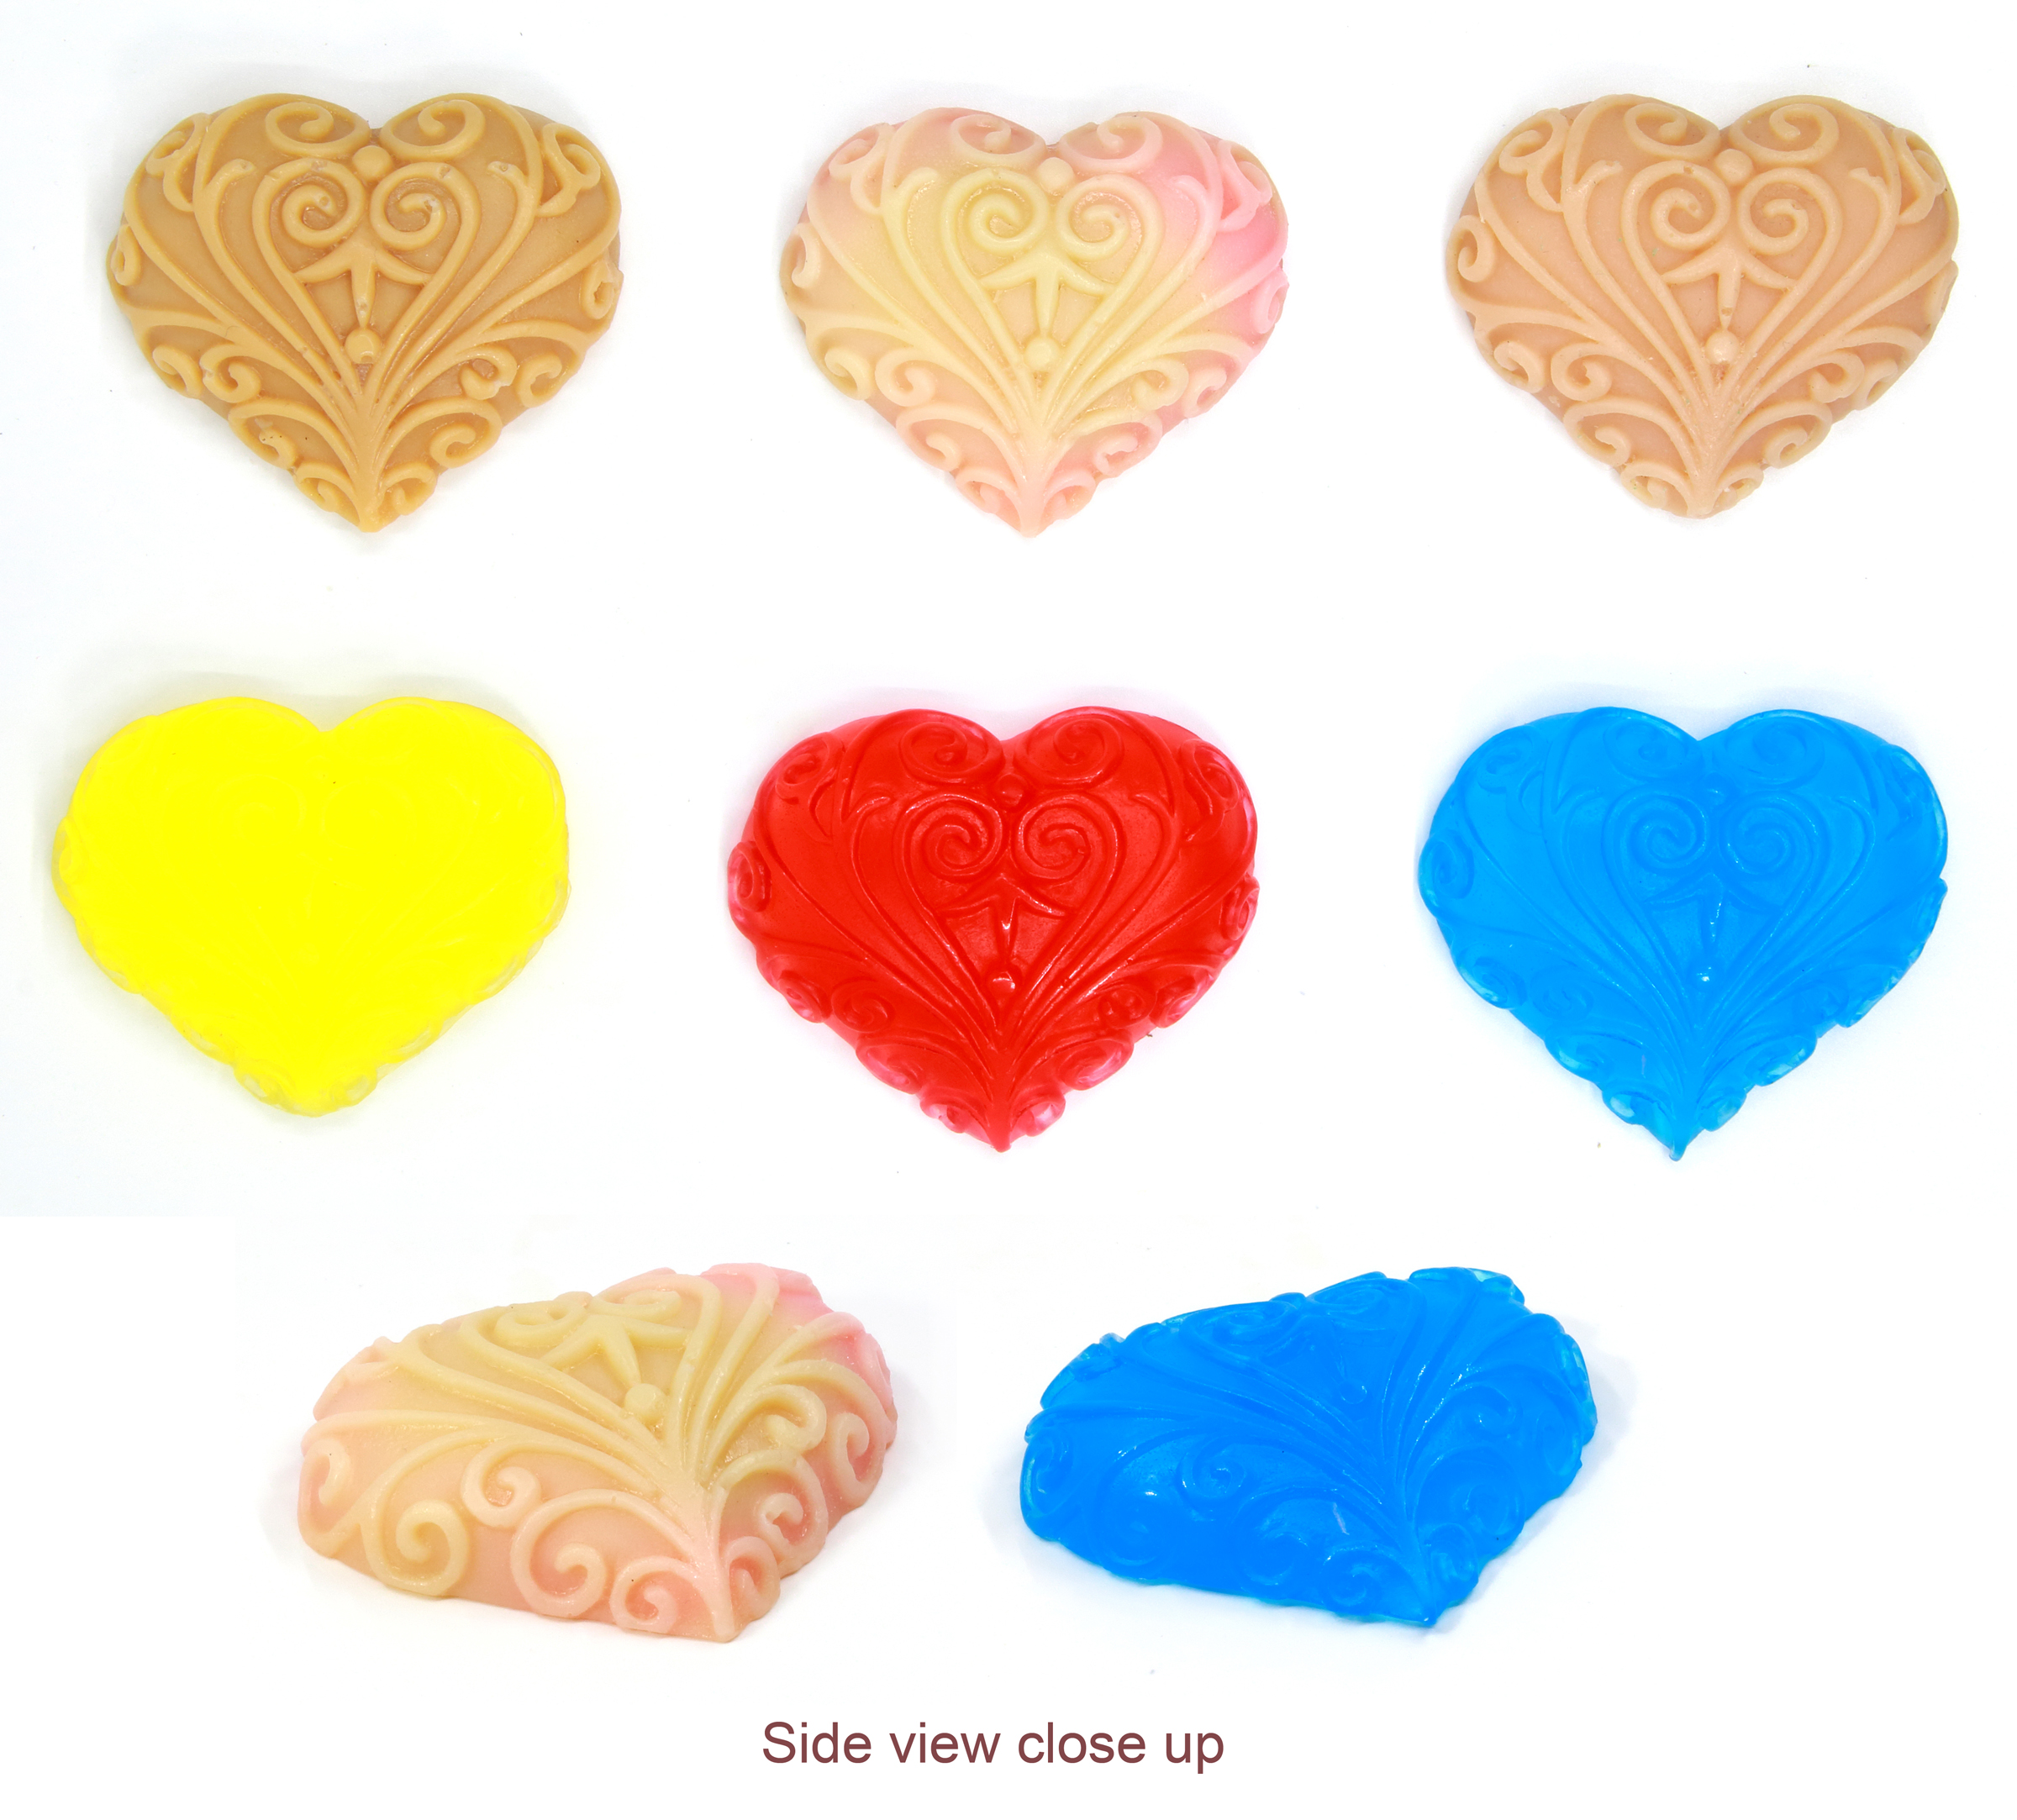 NLW-05 - 20g 3D Love Shape Soap